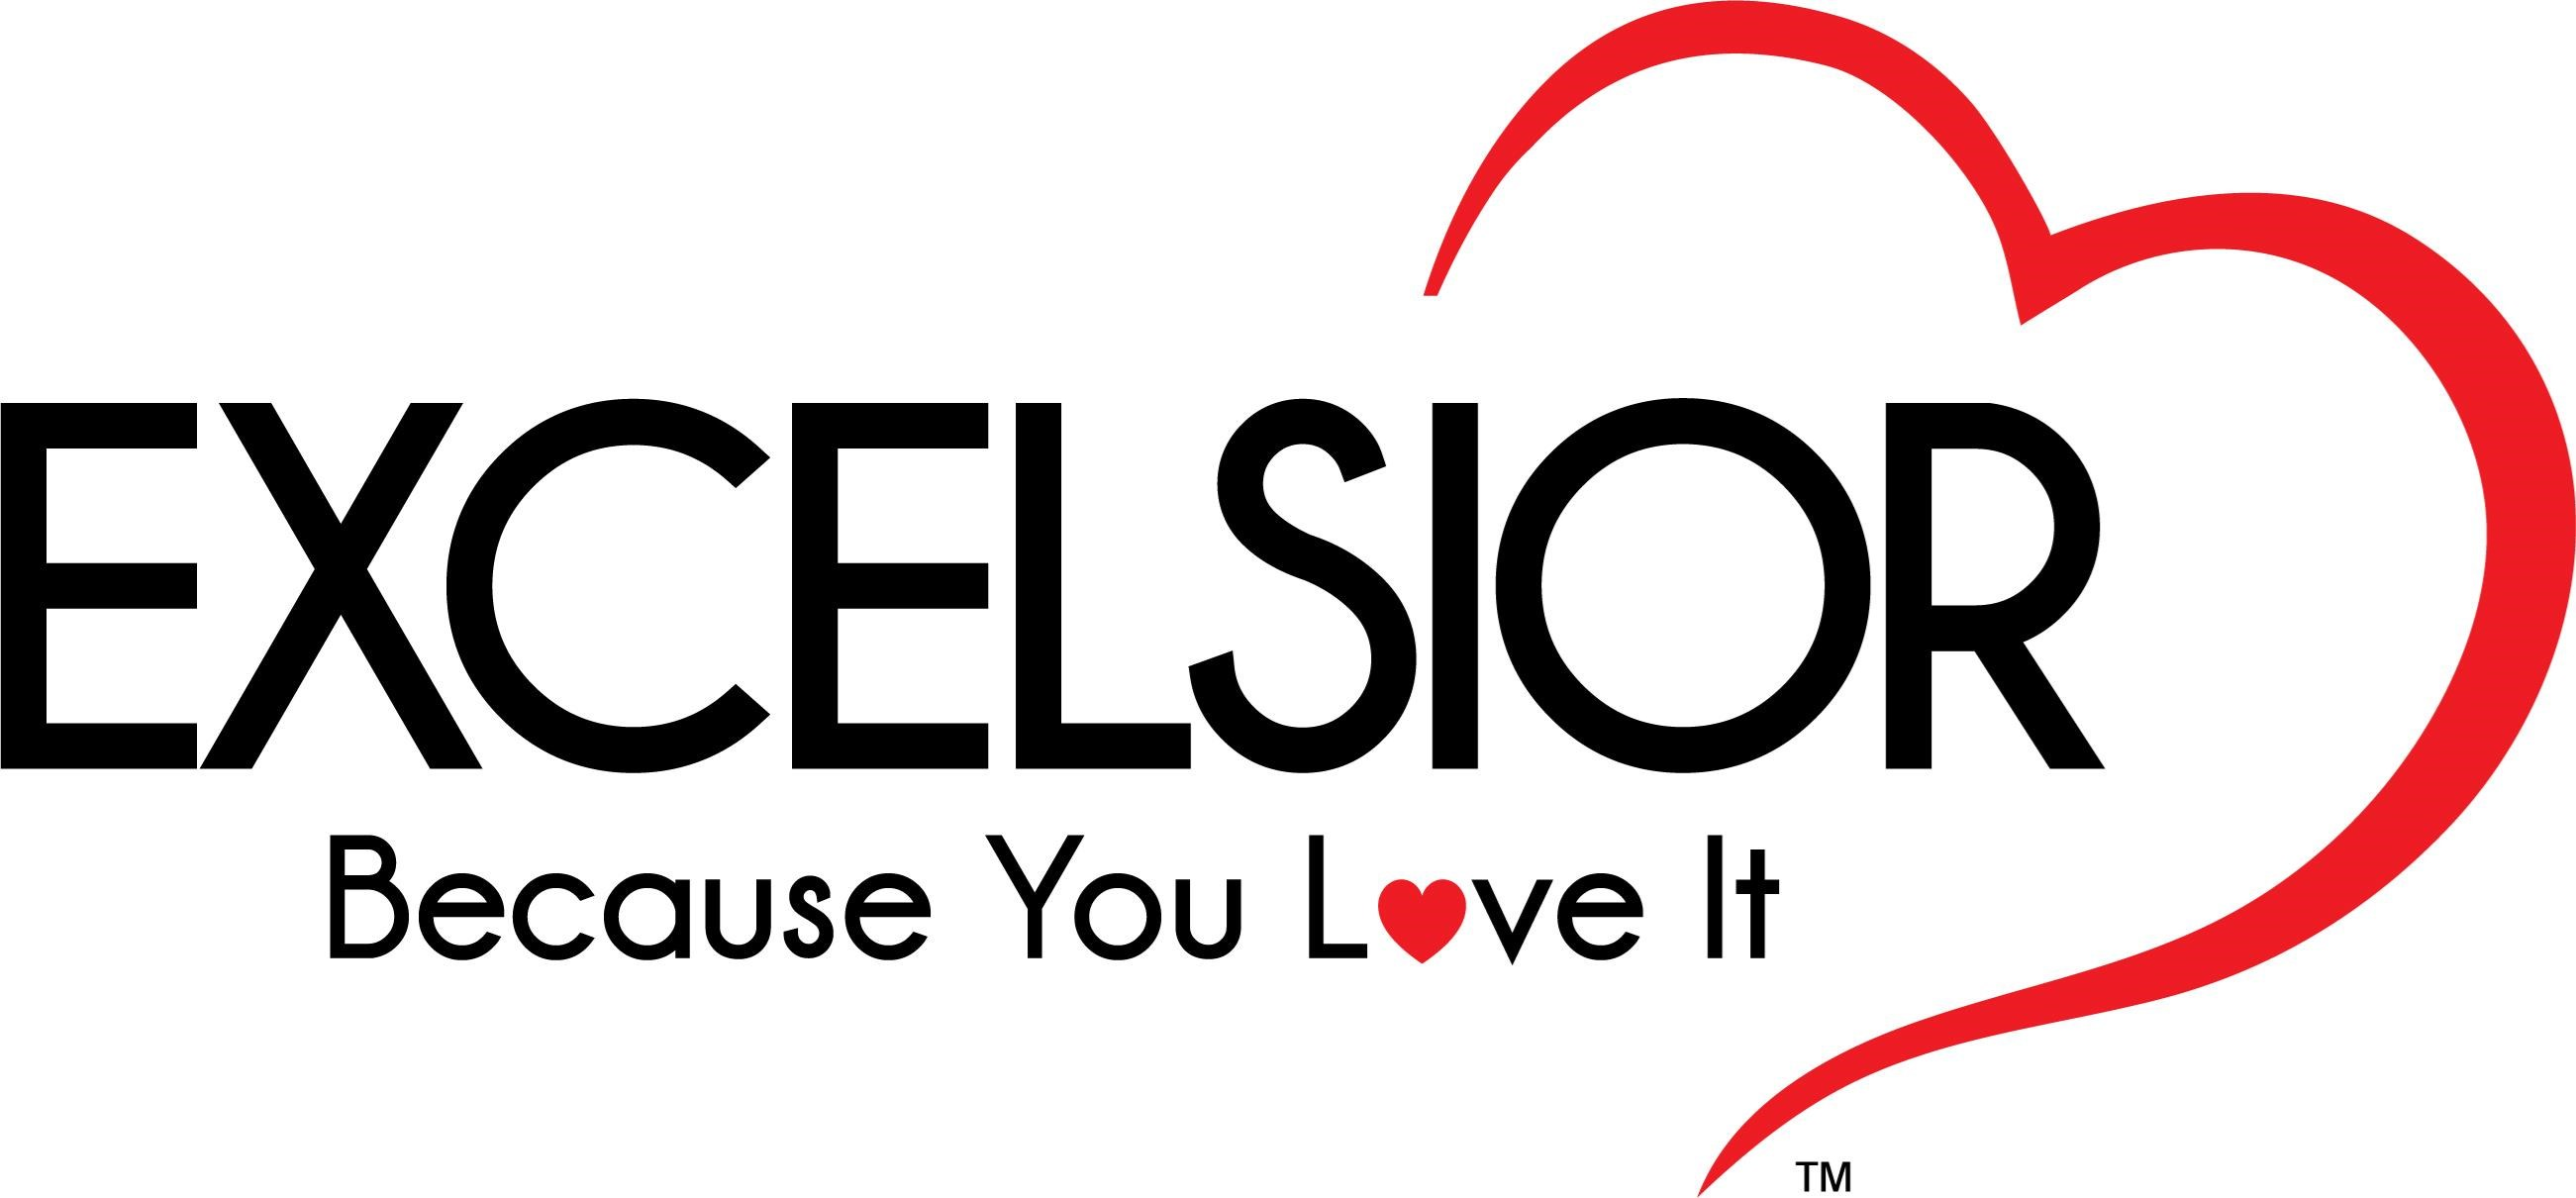 Motion Furniture Motion Furniture Protection $7501-$10000 by Excelsior at C. S. Wo & Sons California